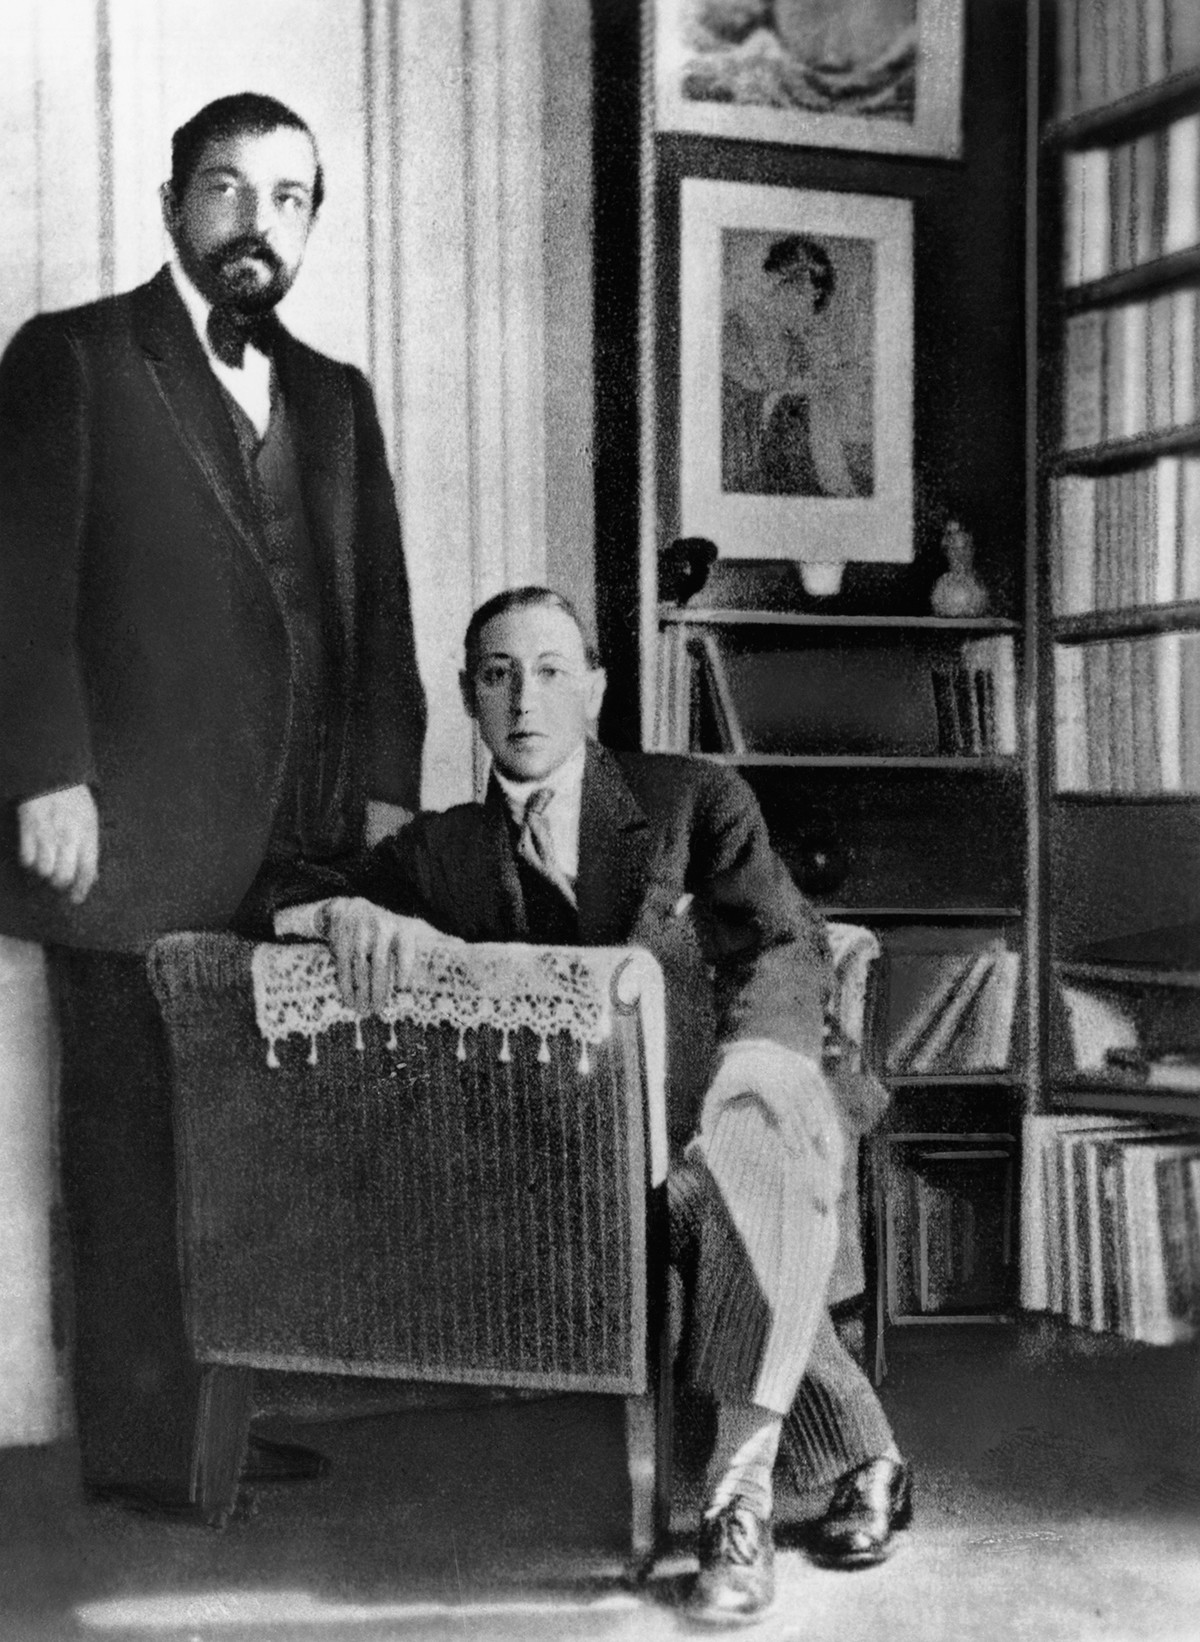 Claude Debussy and Ígor Stravinski